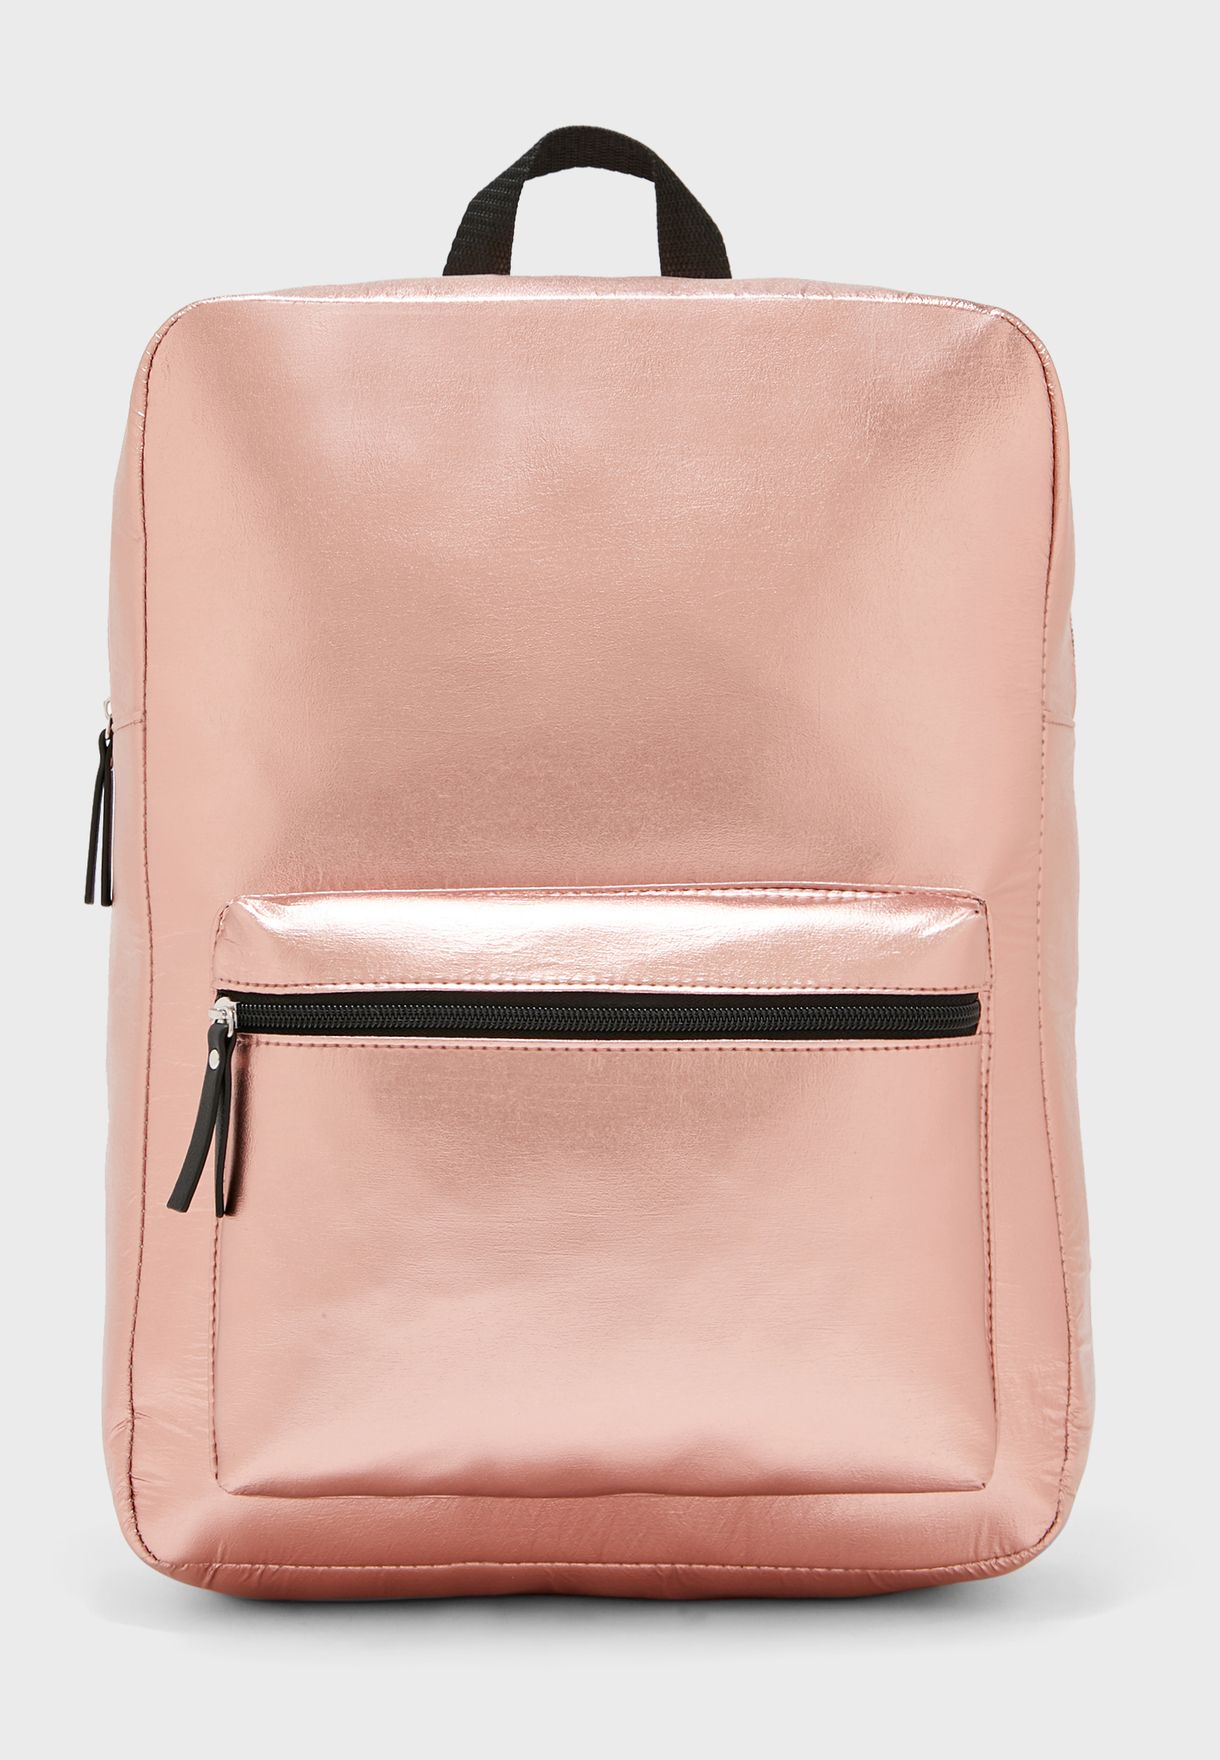 Backpack With Metallic Finish